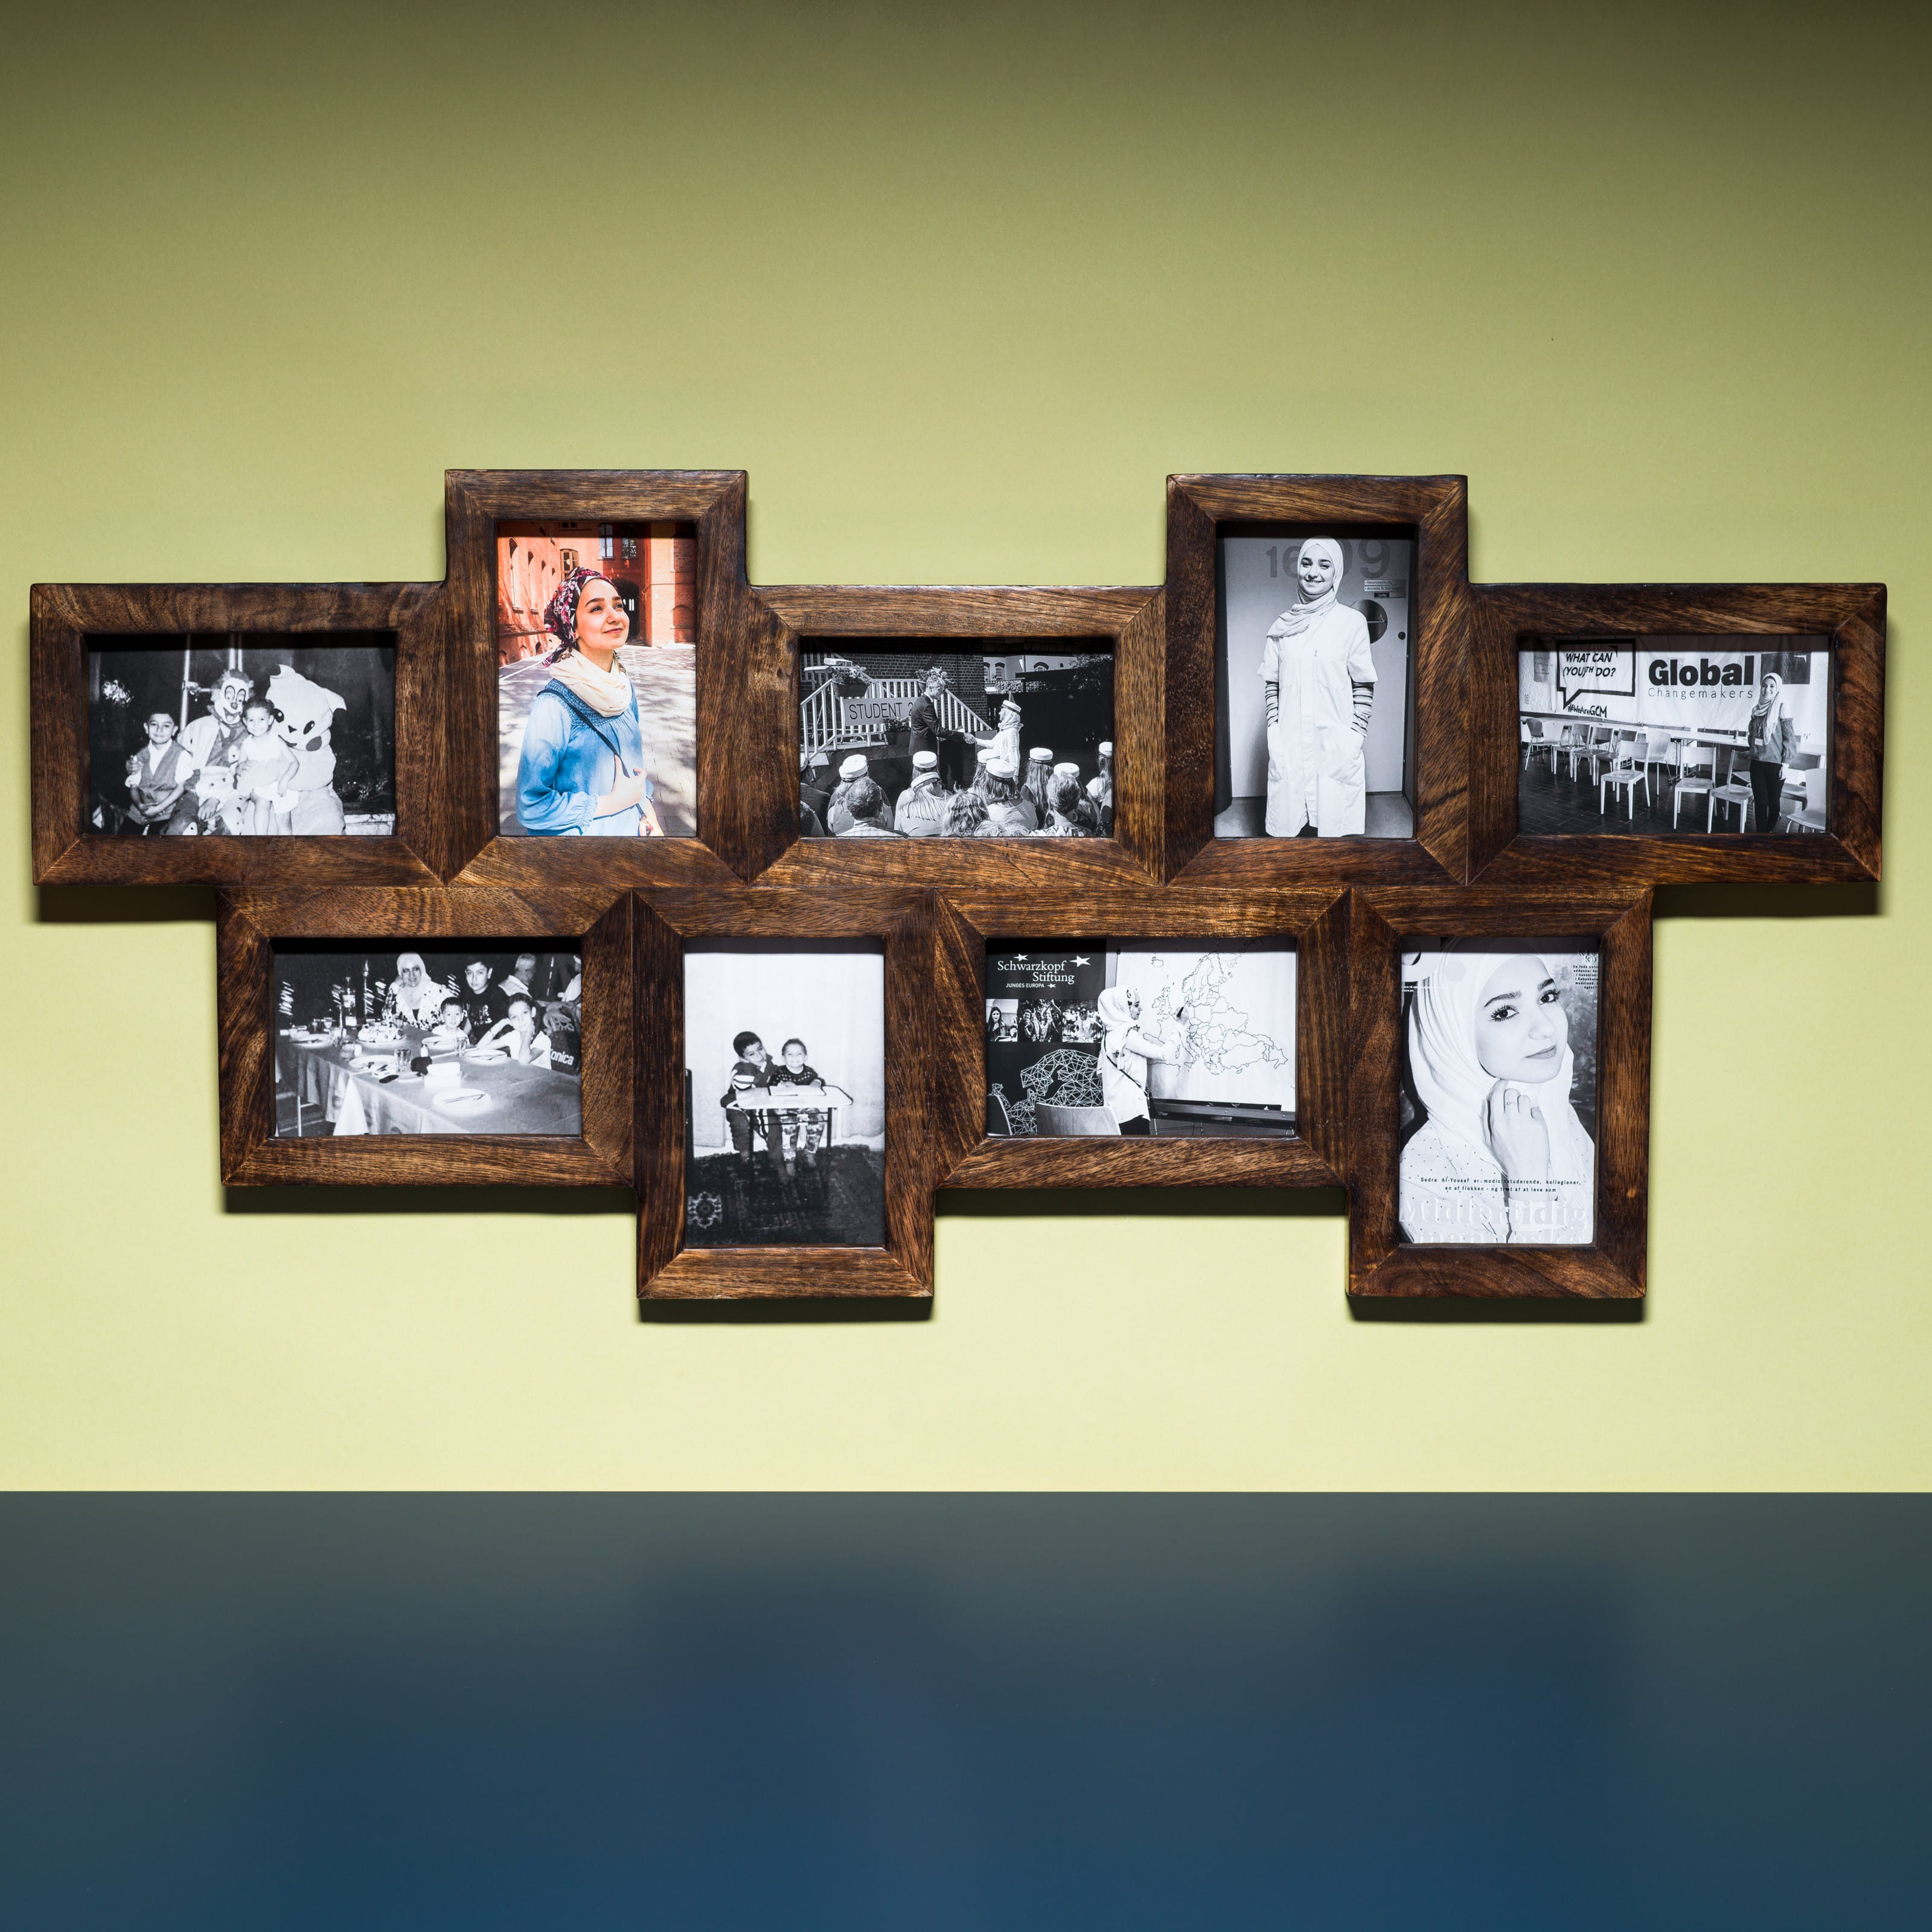 Photograph of a multi-frame photo frame containing nine photographs, eight in colour and one in black and white. The frame is hung on a light green coloured wall above a blue tabletop.